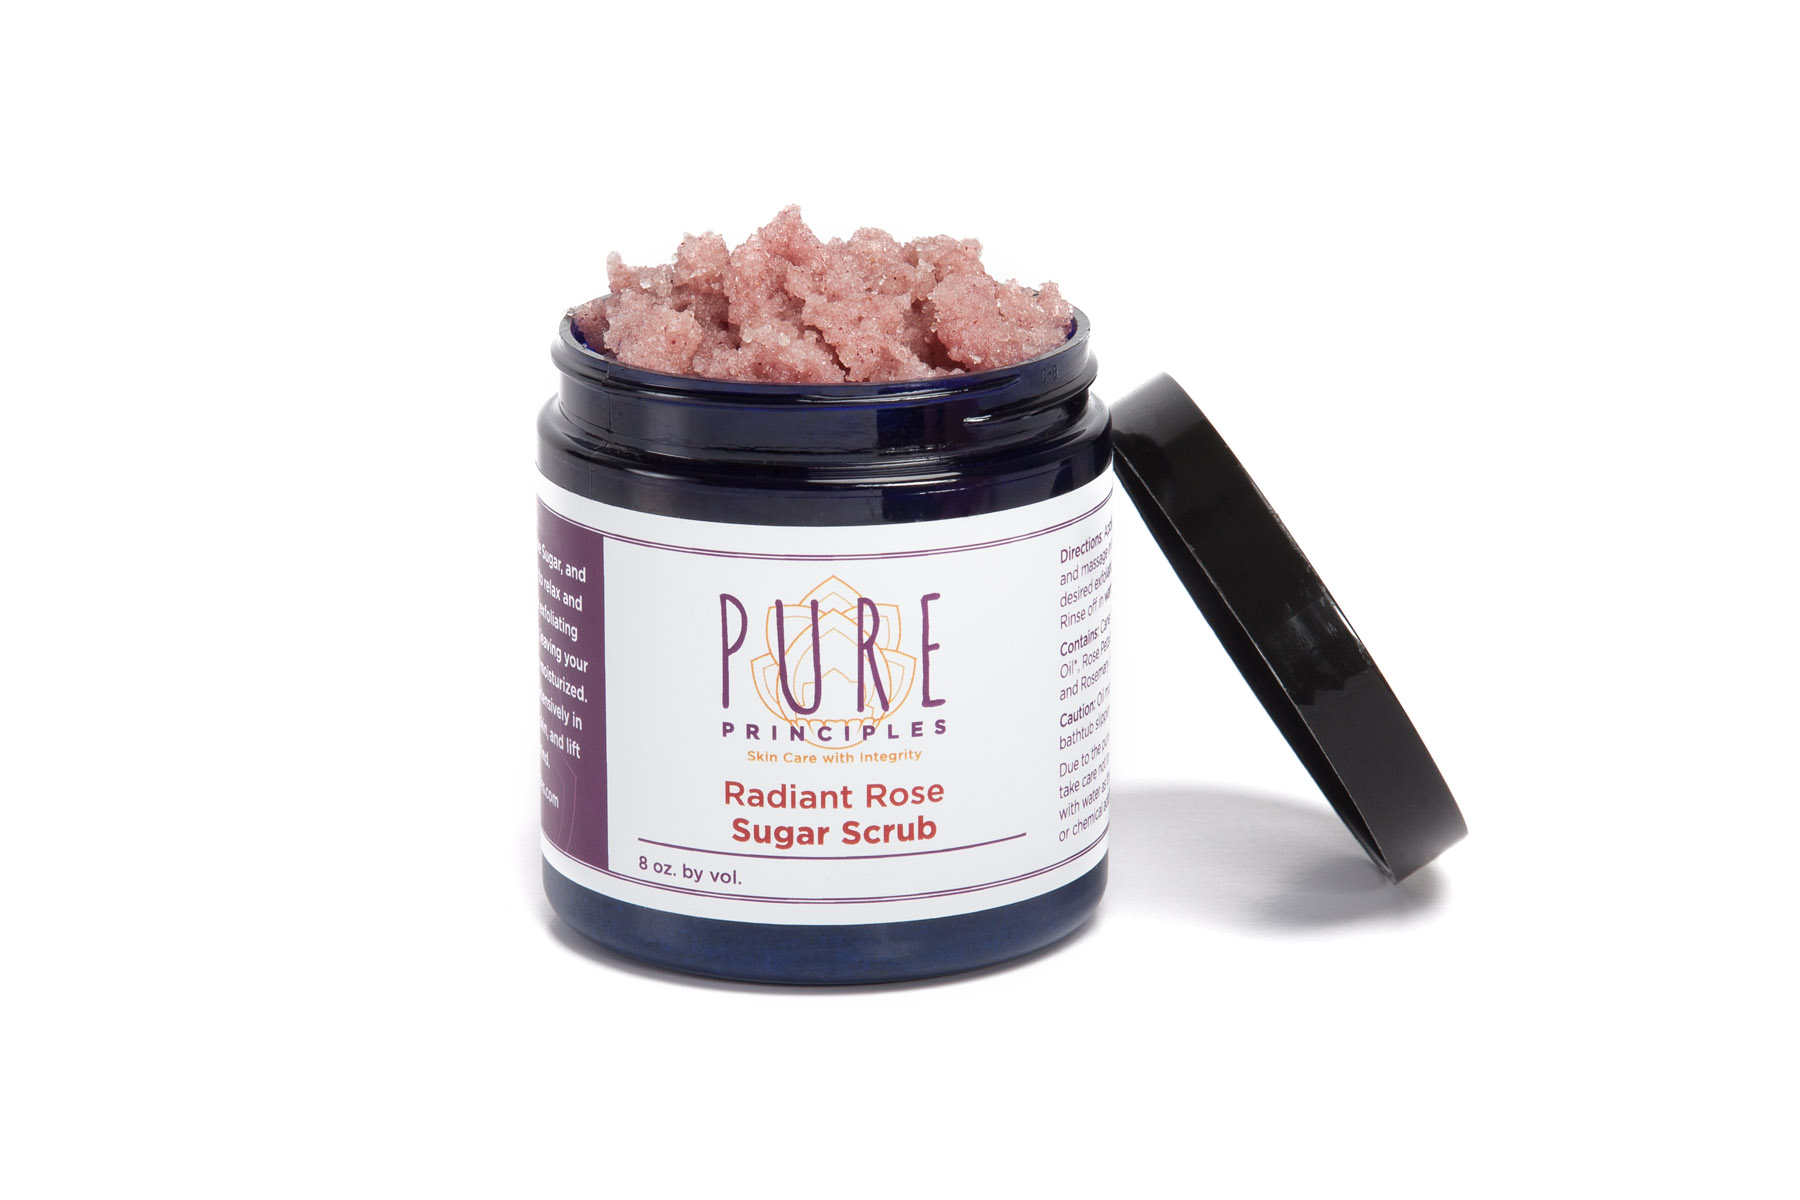 Organically sourced for radiant and healthy skin - Pure PrinciplesUSE CODE: PALMCYBER for 10% off $30Code Valid through 12:00 a.m. November 27Popular: Radiant Rose Sugar Scrub ($20)